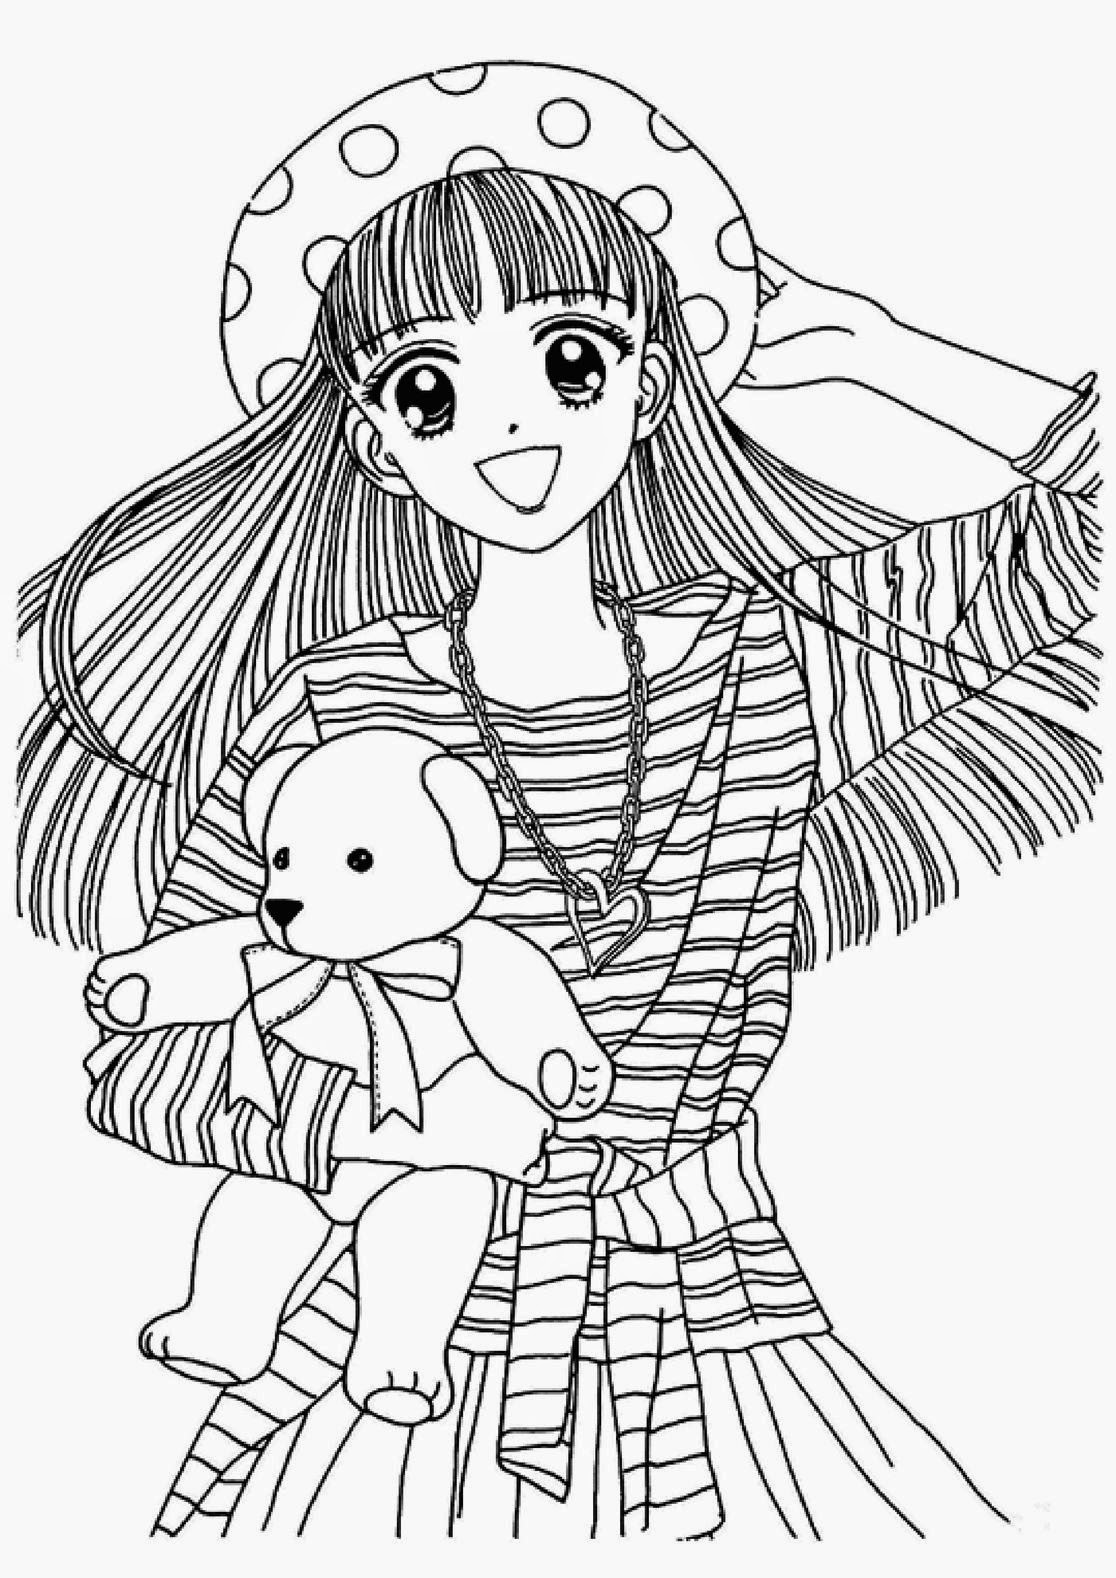 color anime cute coloring pages best coloring pages for kids anime color